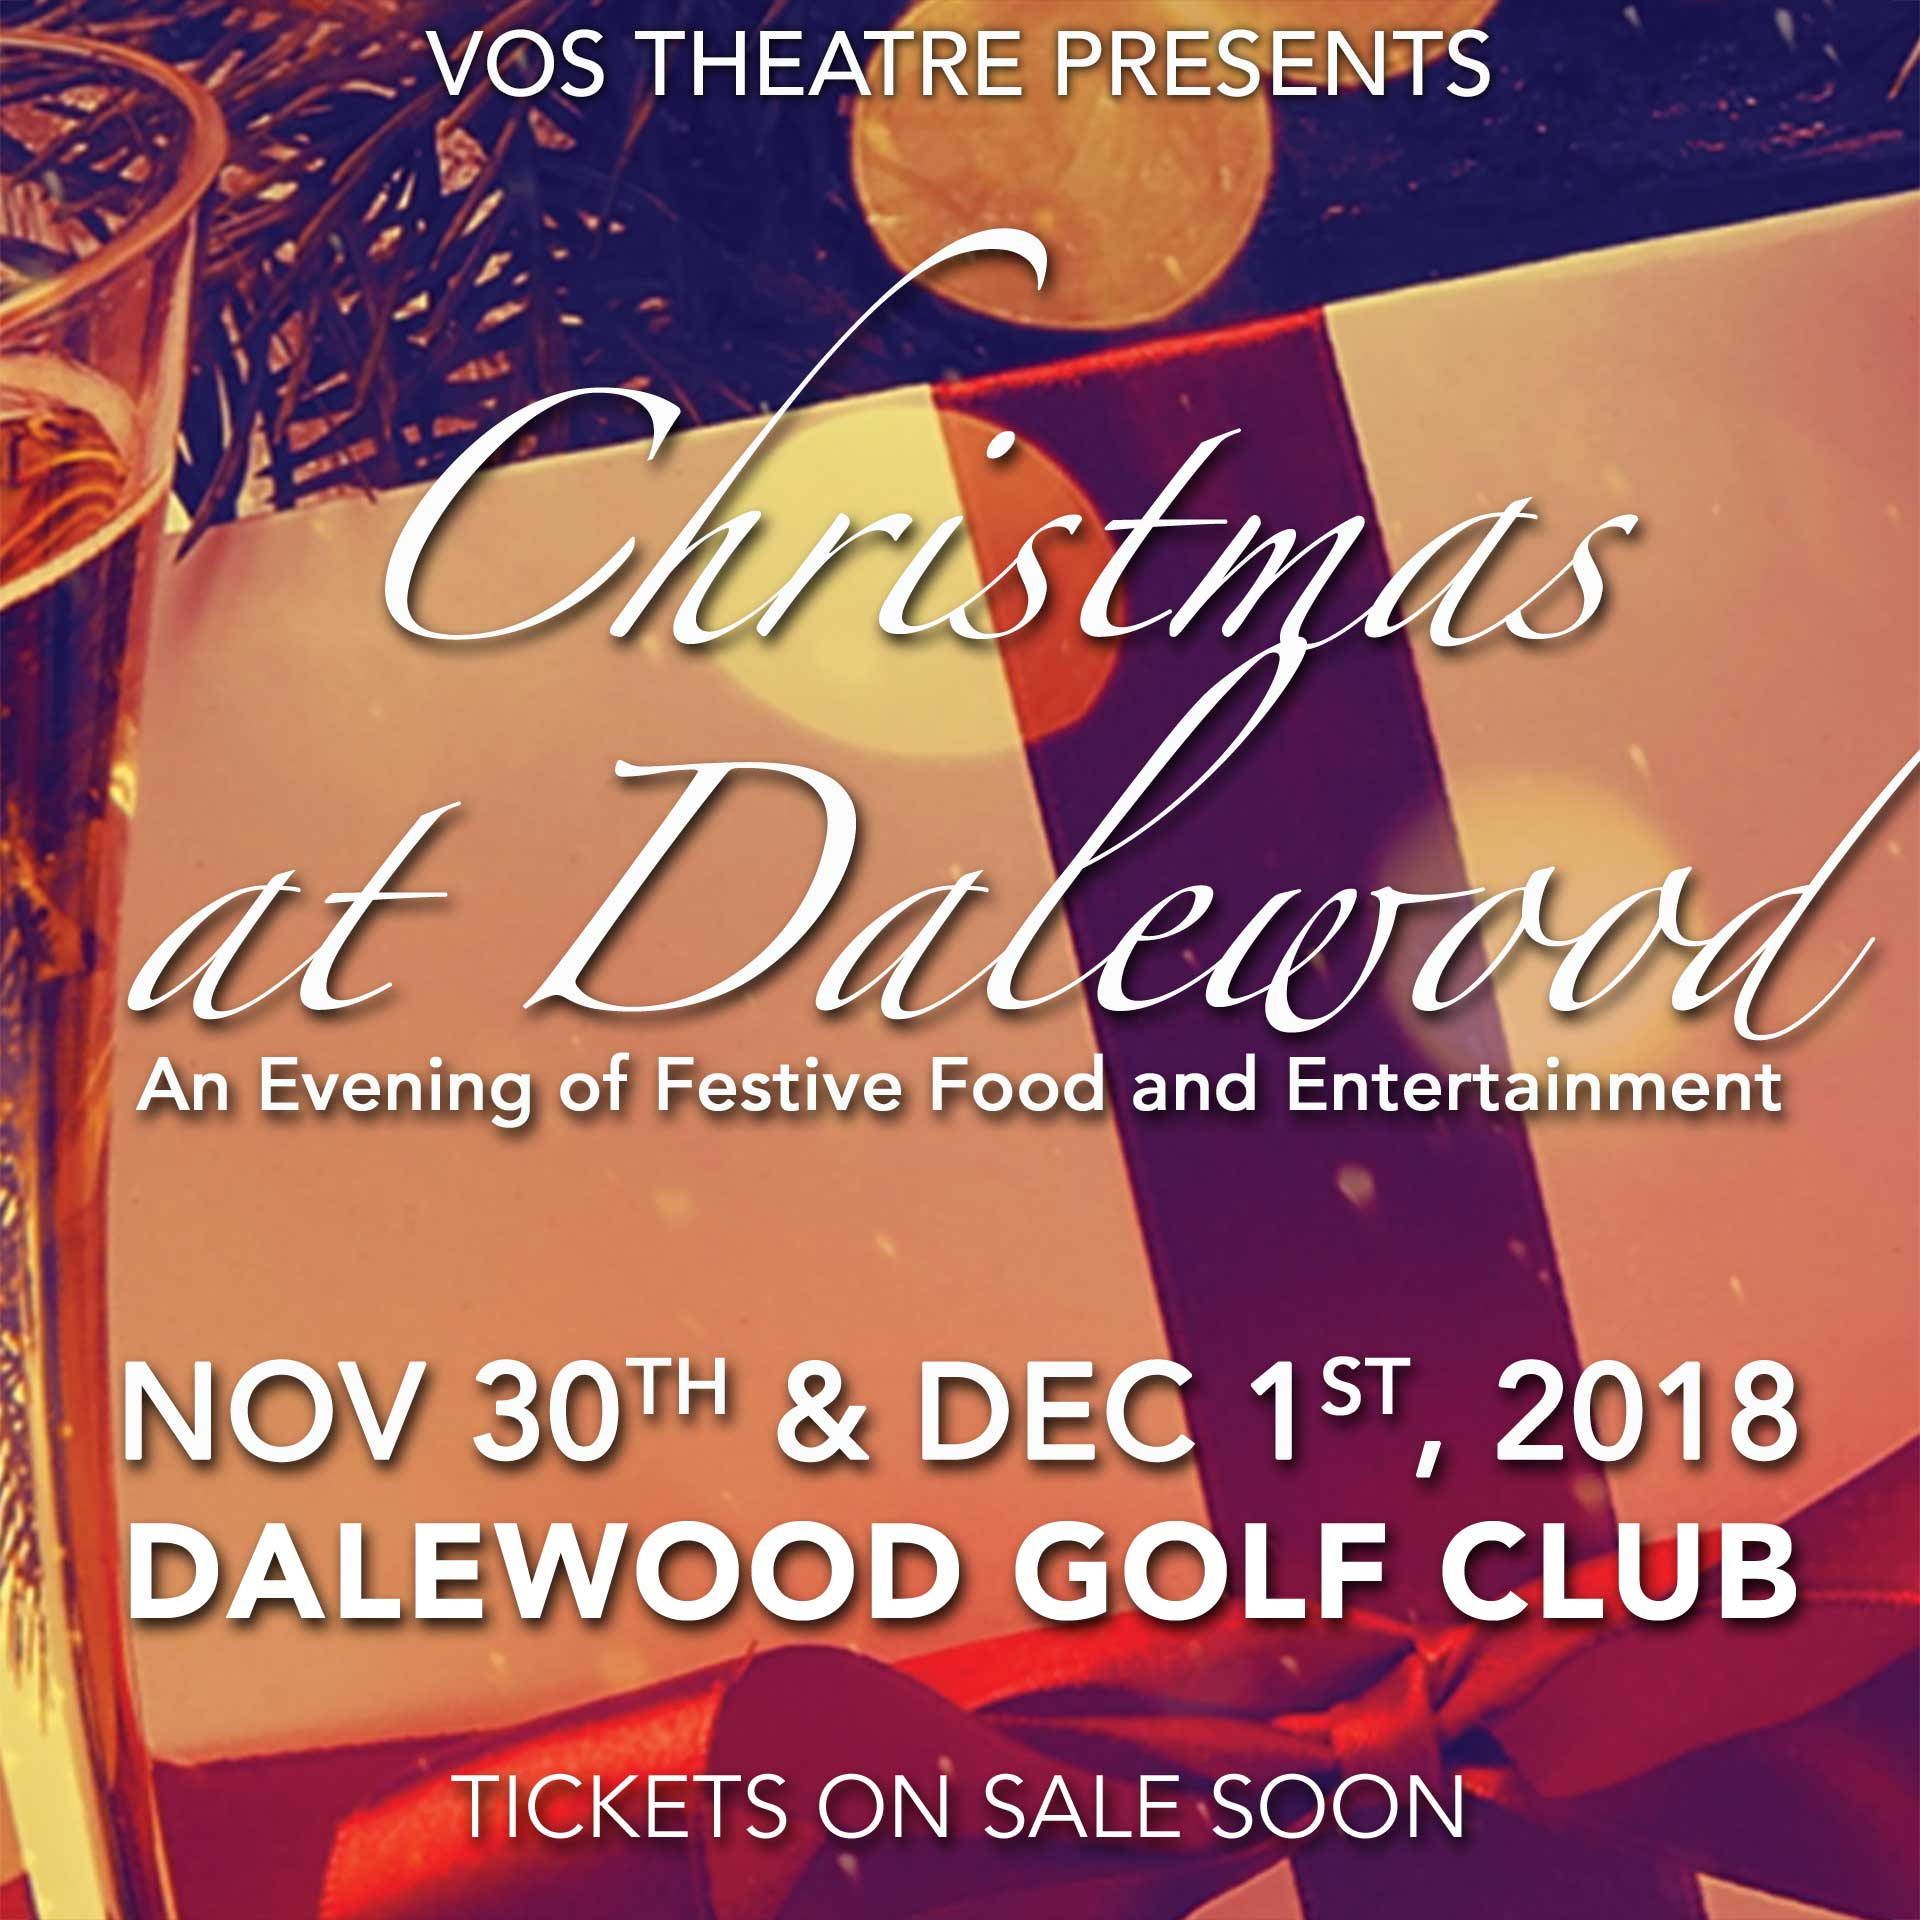 VOS Theatre Presents - Christmas at Dalewood - Nov 30-Dec 1